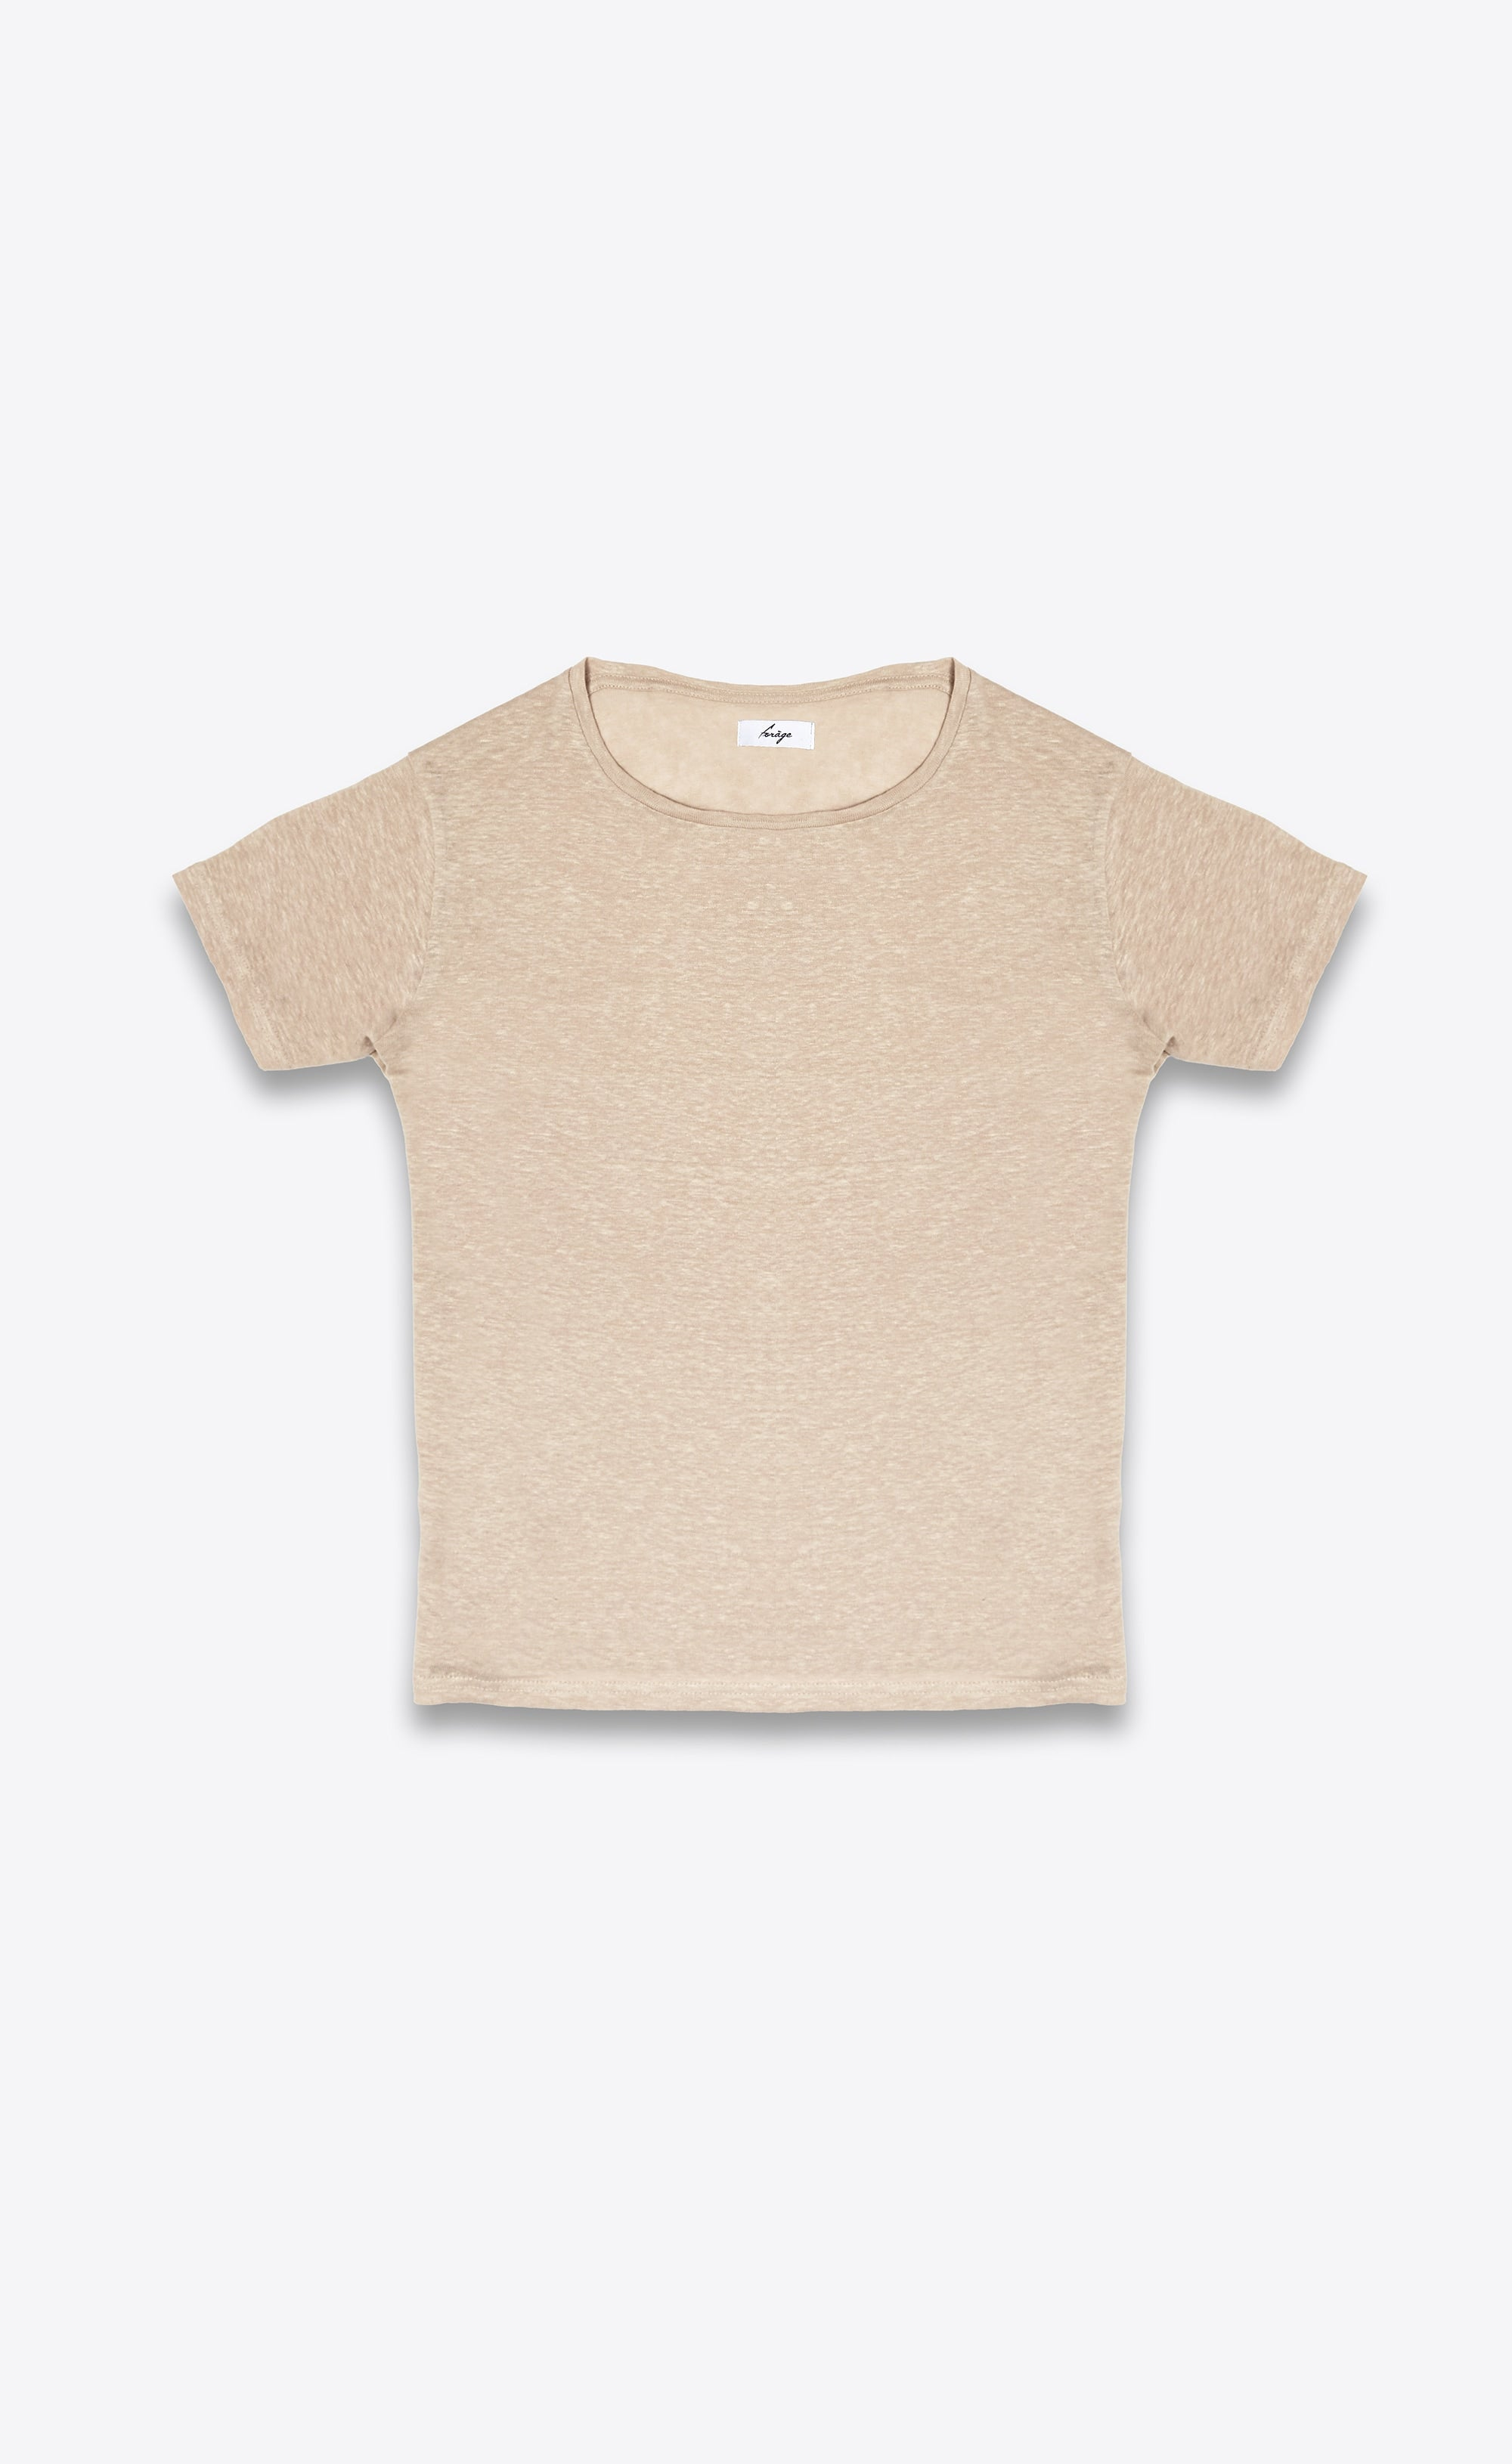 LINEN T-SHIRT - CAMEL - Forage-Clothing